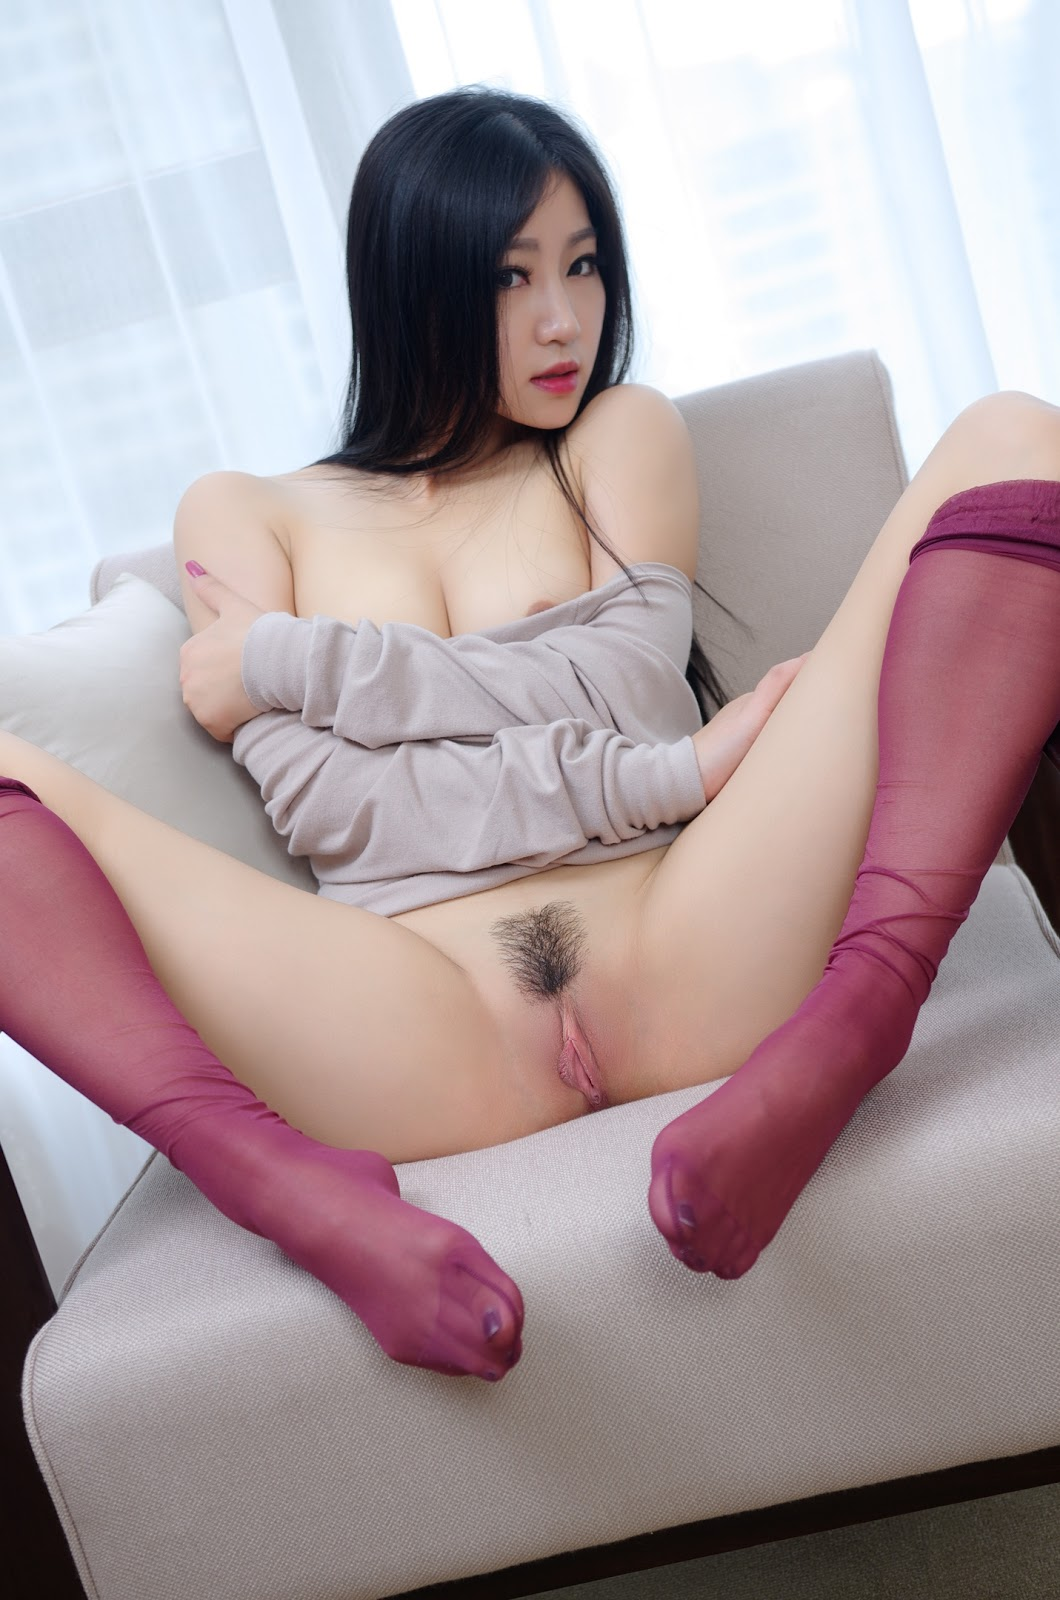 c7pU 9ewBx8 - Cute nude asian model show sexy pussy 2020